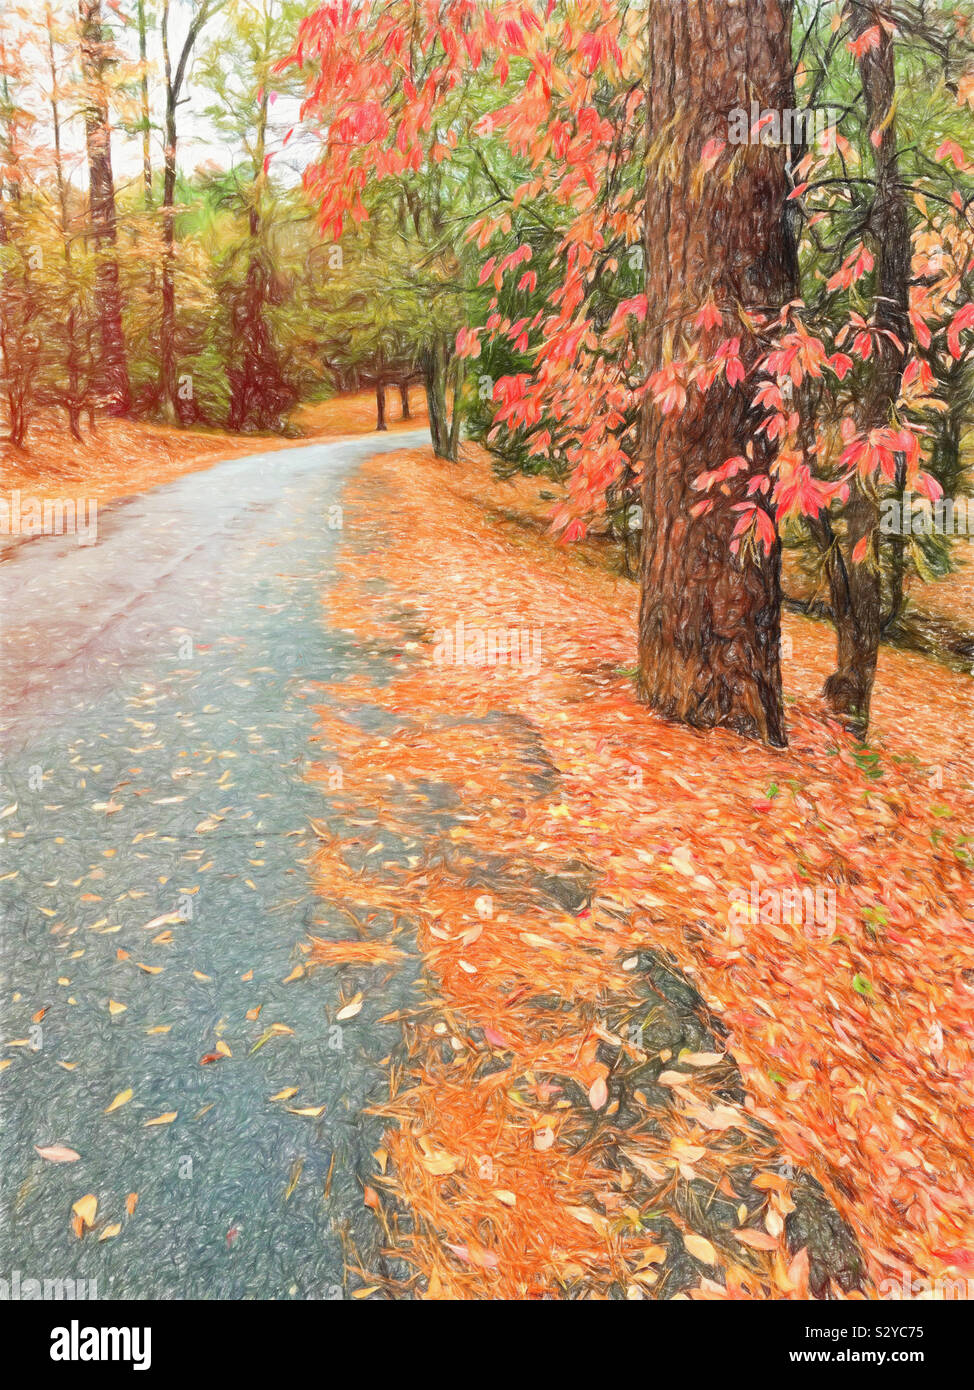 Autumn season and leaf color change along a paved hiking trail at Flat Rock Park in Columbus Georgia USA. Stock Photo